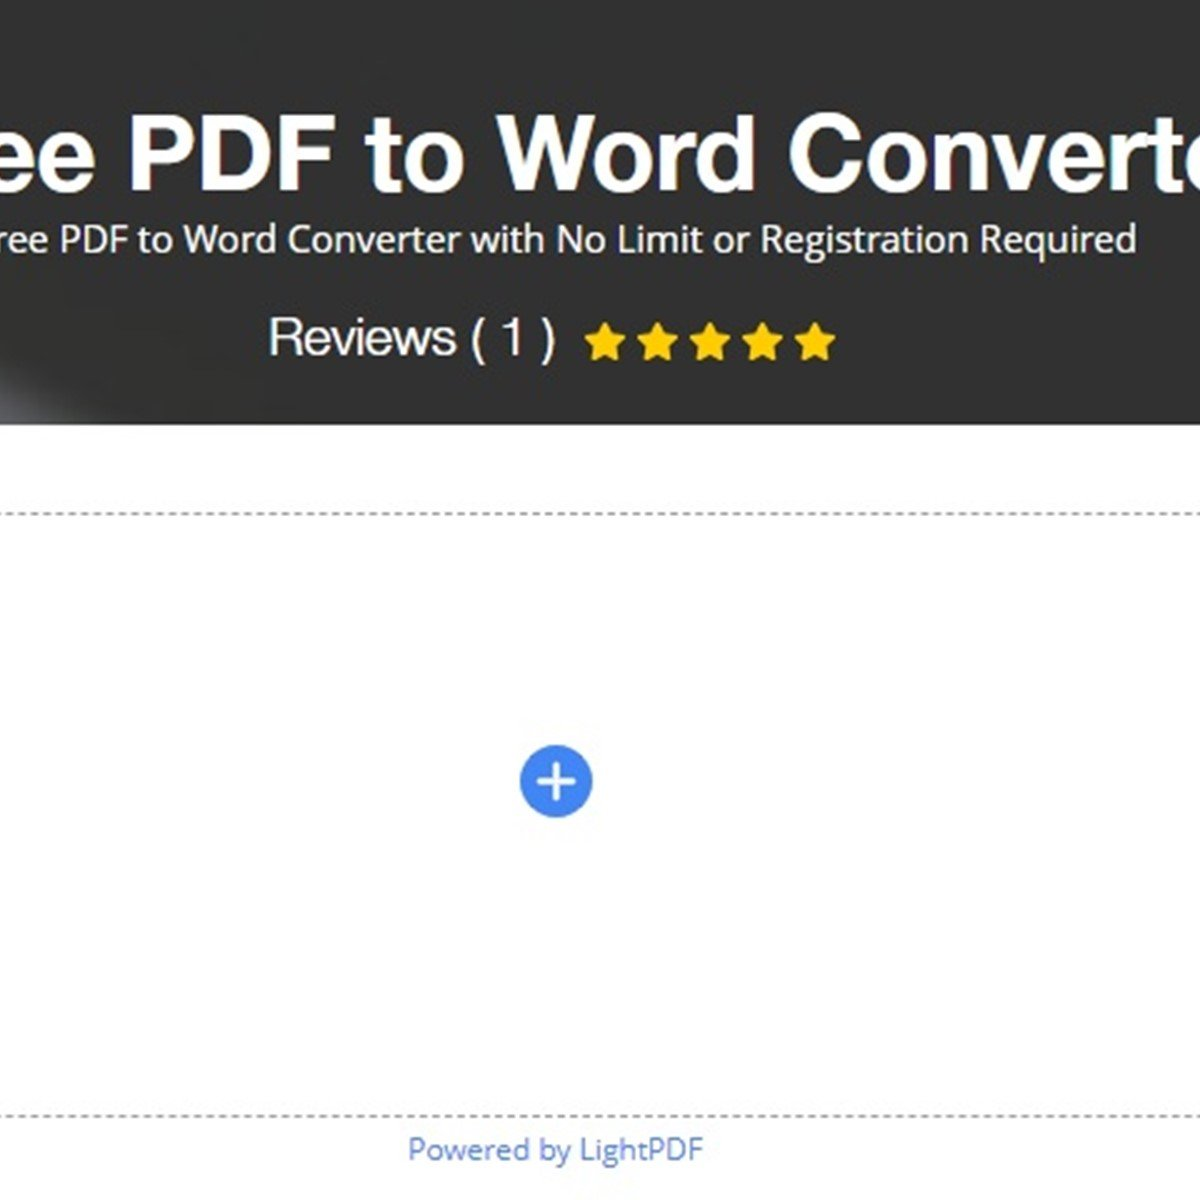 Acethinker Free PDF to Word Converter Alternatives and